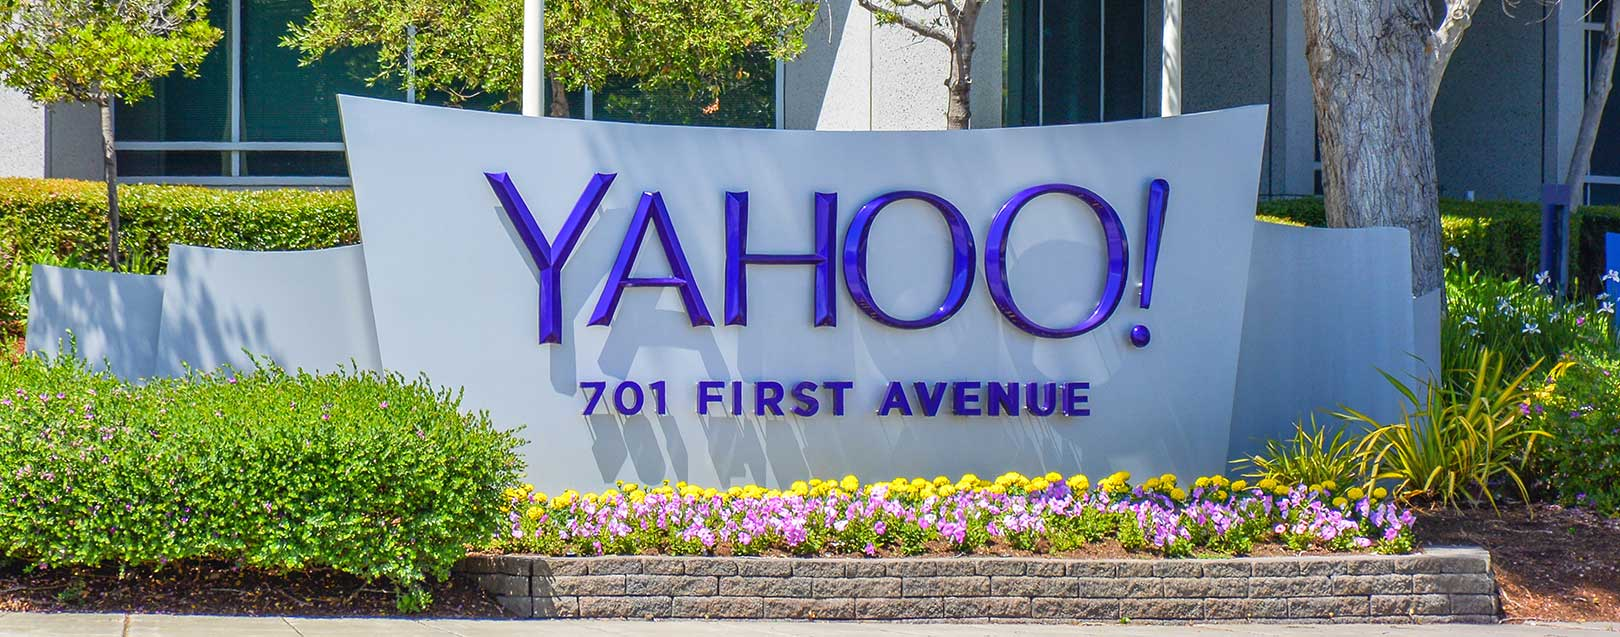 Yahoo inks $4.8bn deal with Verizon for core business